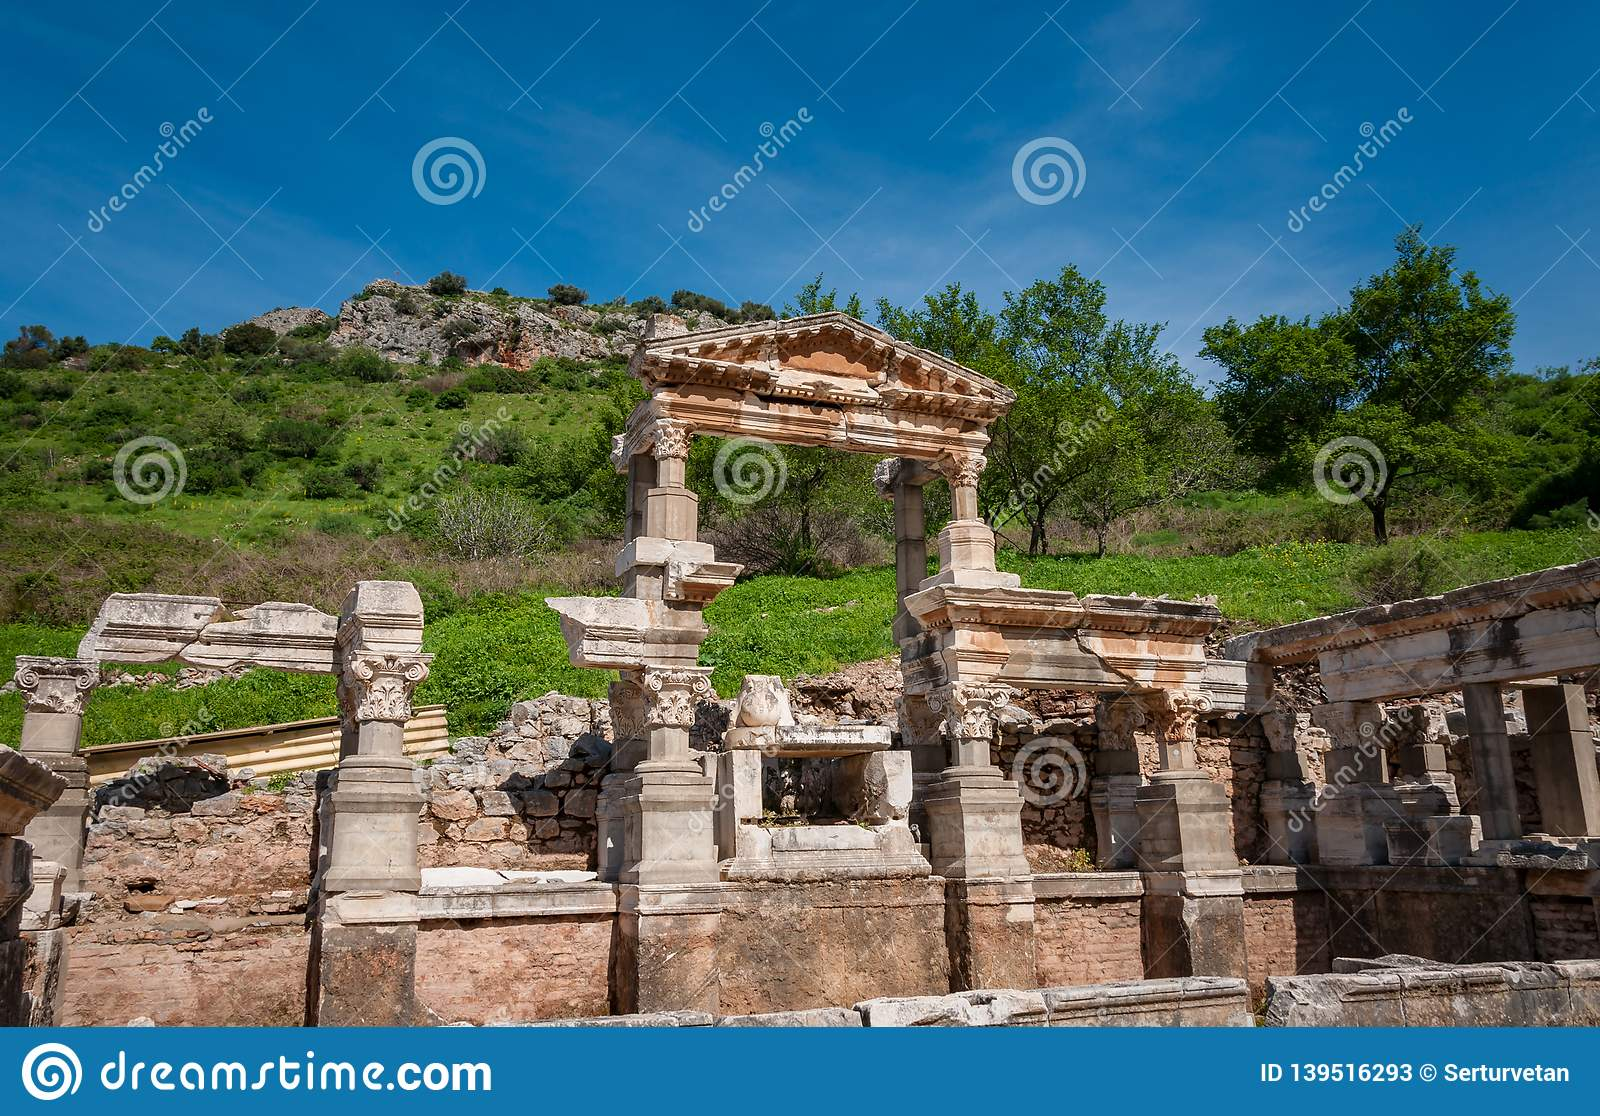 The Fountain of Traianus in Ephesus Ancient City, Izmir, Turkey.The ancient city is listed as a UNESCO World Heritage Site